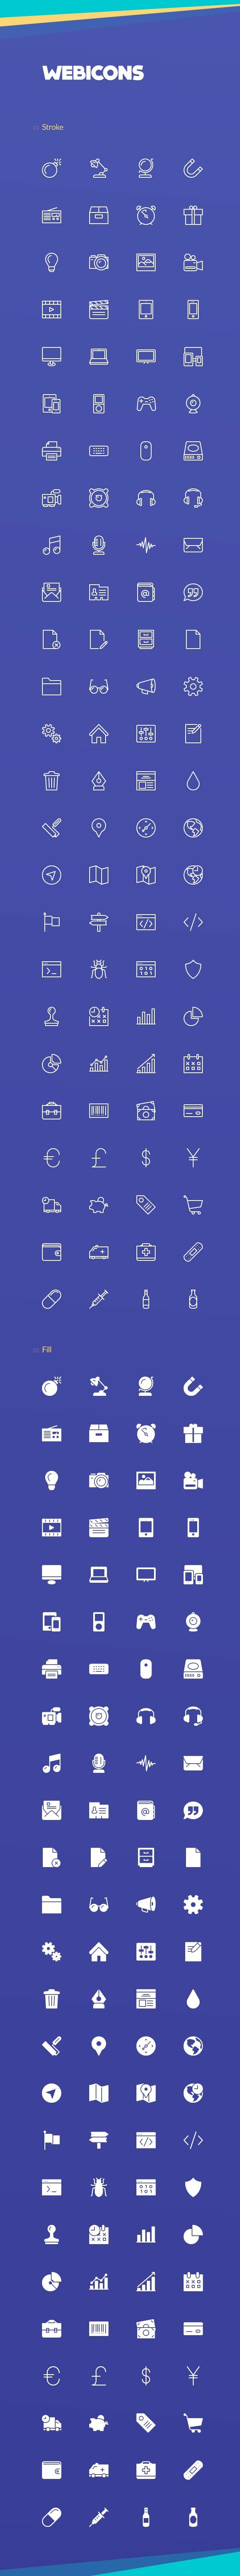 Free Download Webicons – 100 Stroke & Fill Icons